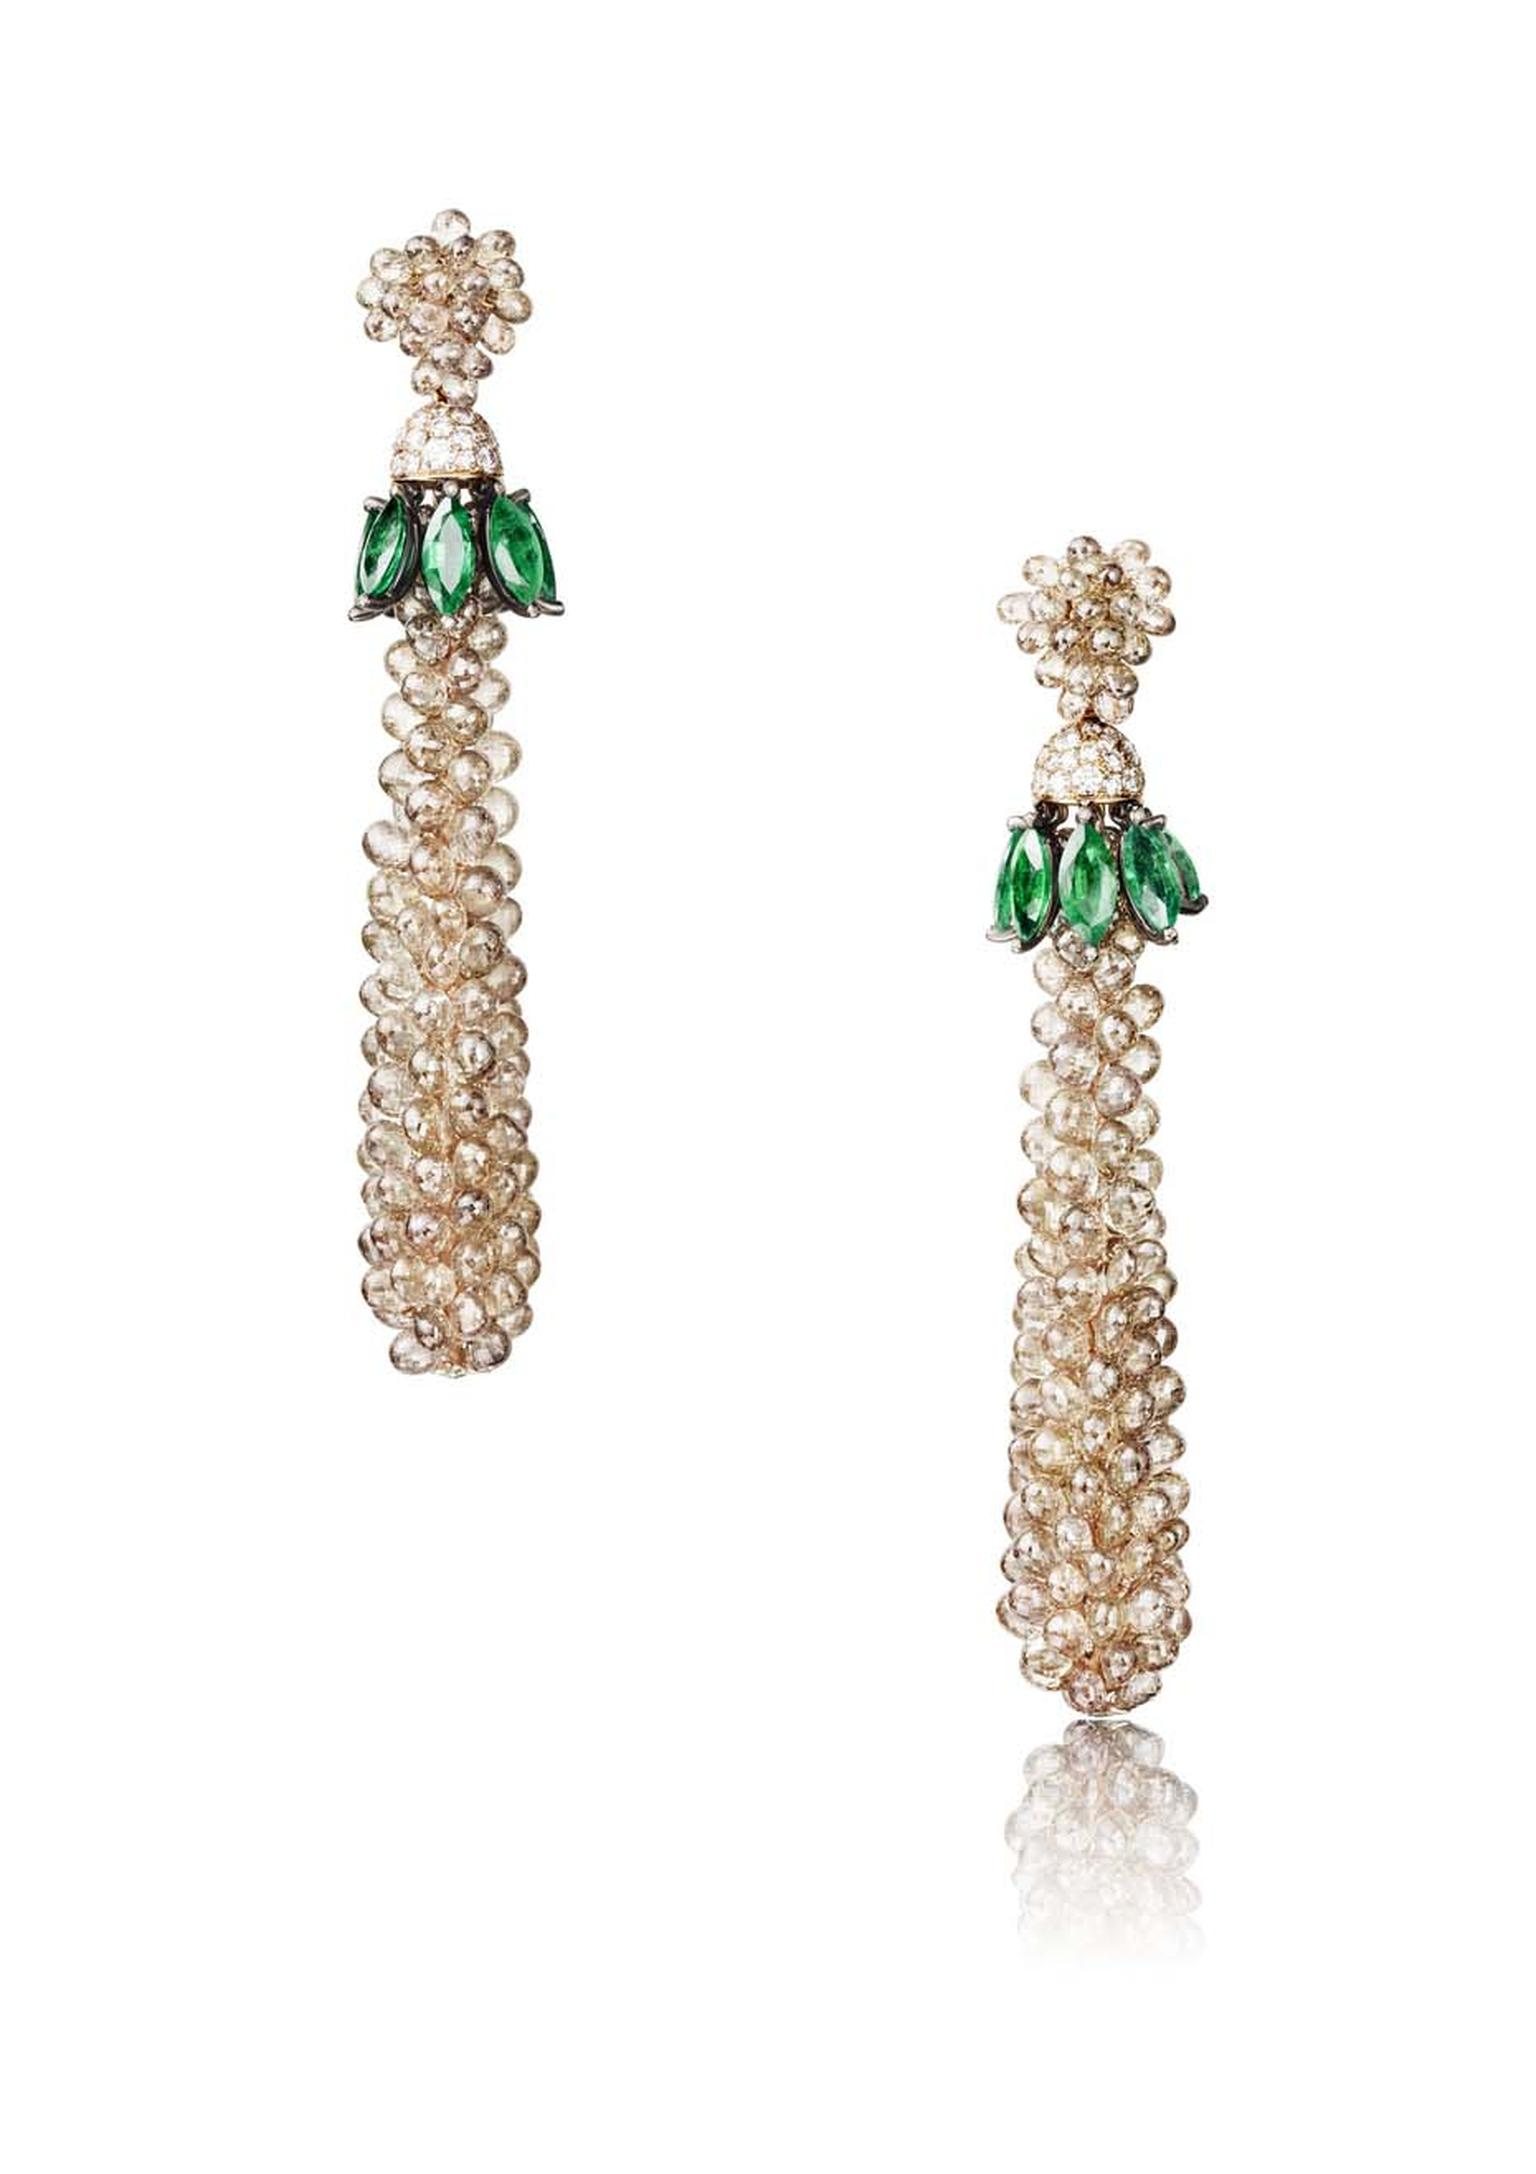 The de GRISOGONO earrings worn by Amber Heard in Cannes, featuring 16 marquise emeralds, 291 brown briolette diamonds, 70 white diamonds, 32 brown diamonds and 26 emeralds